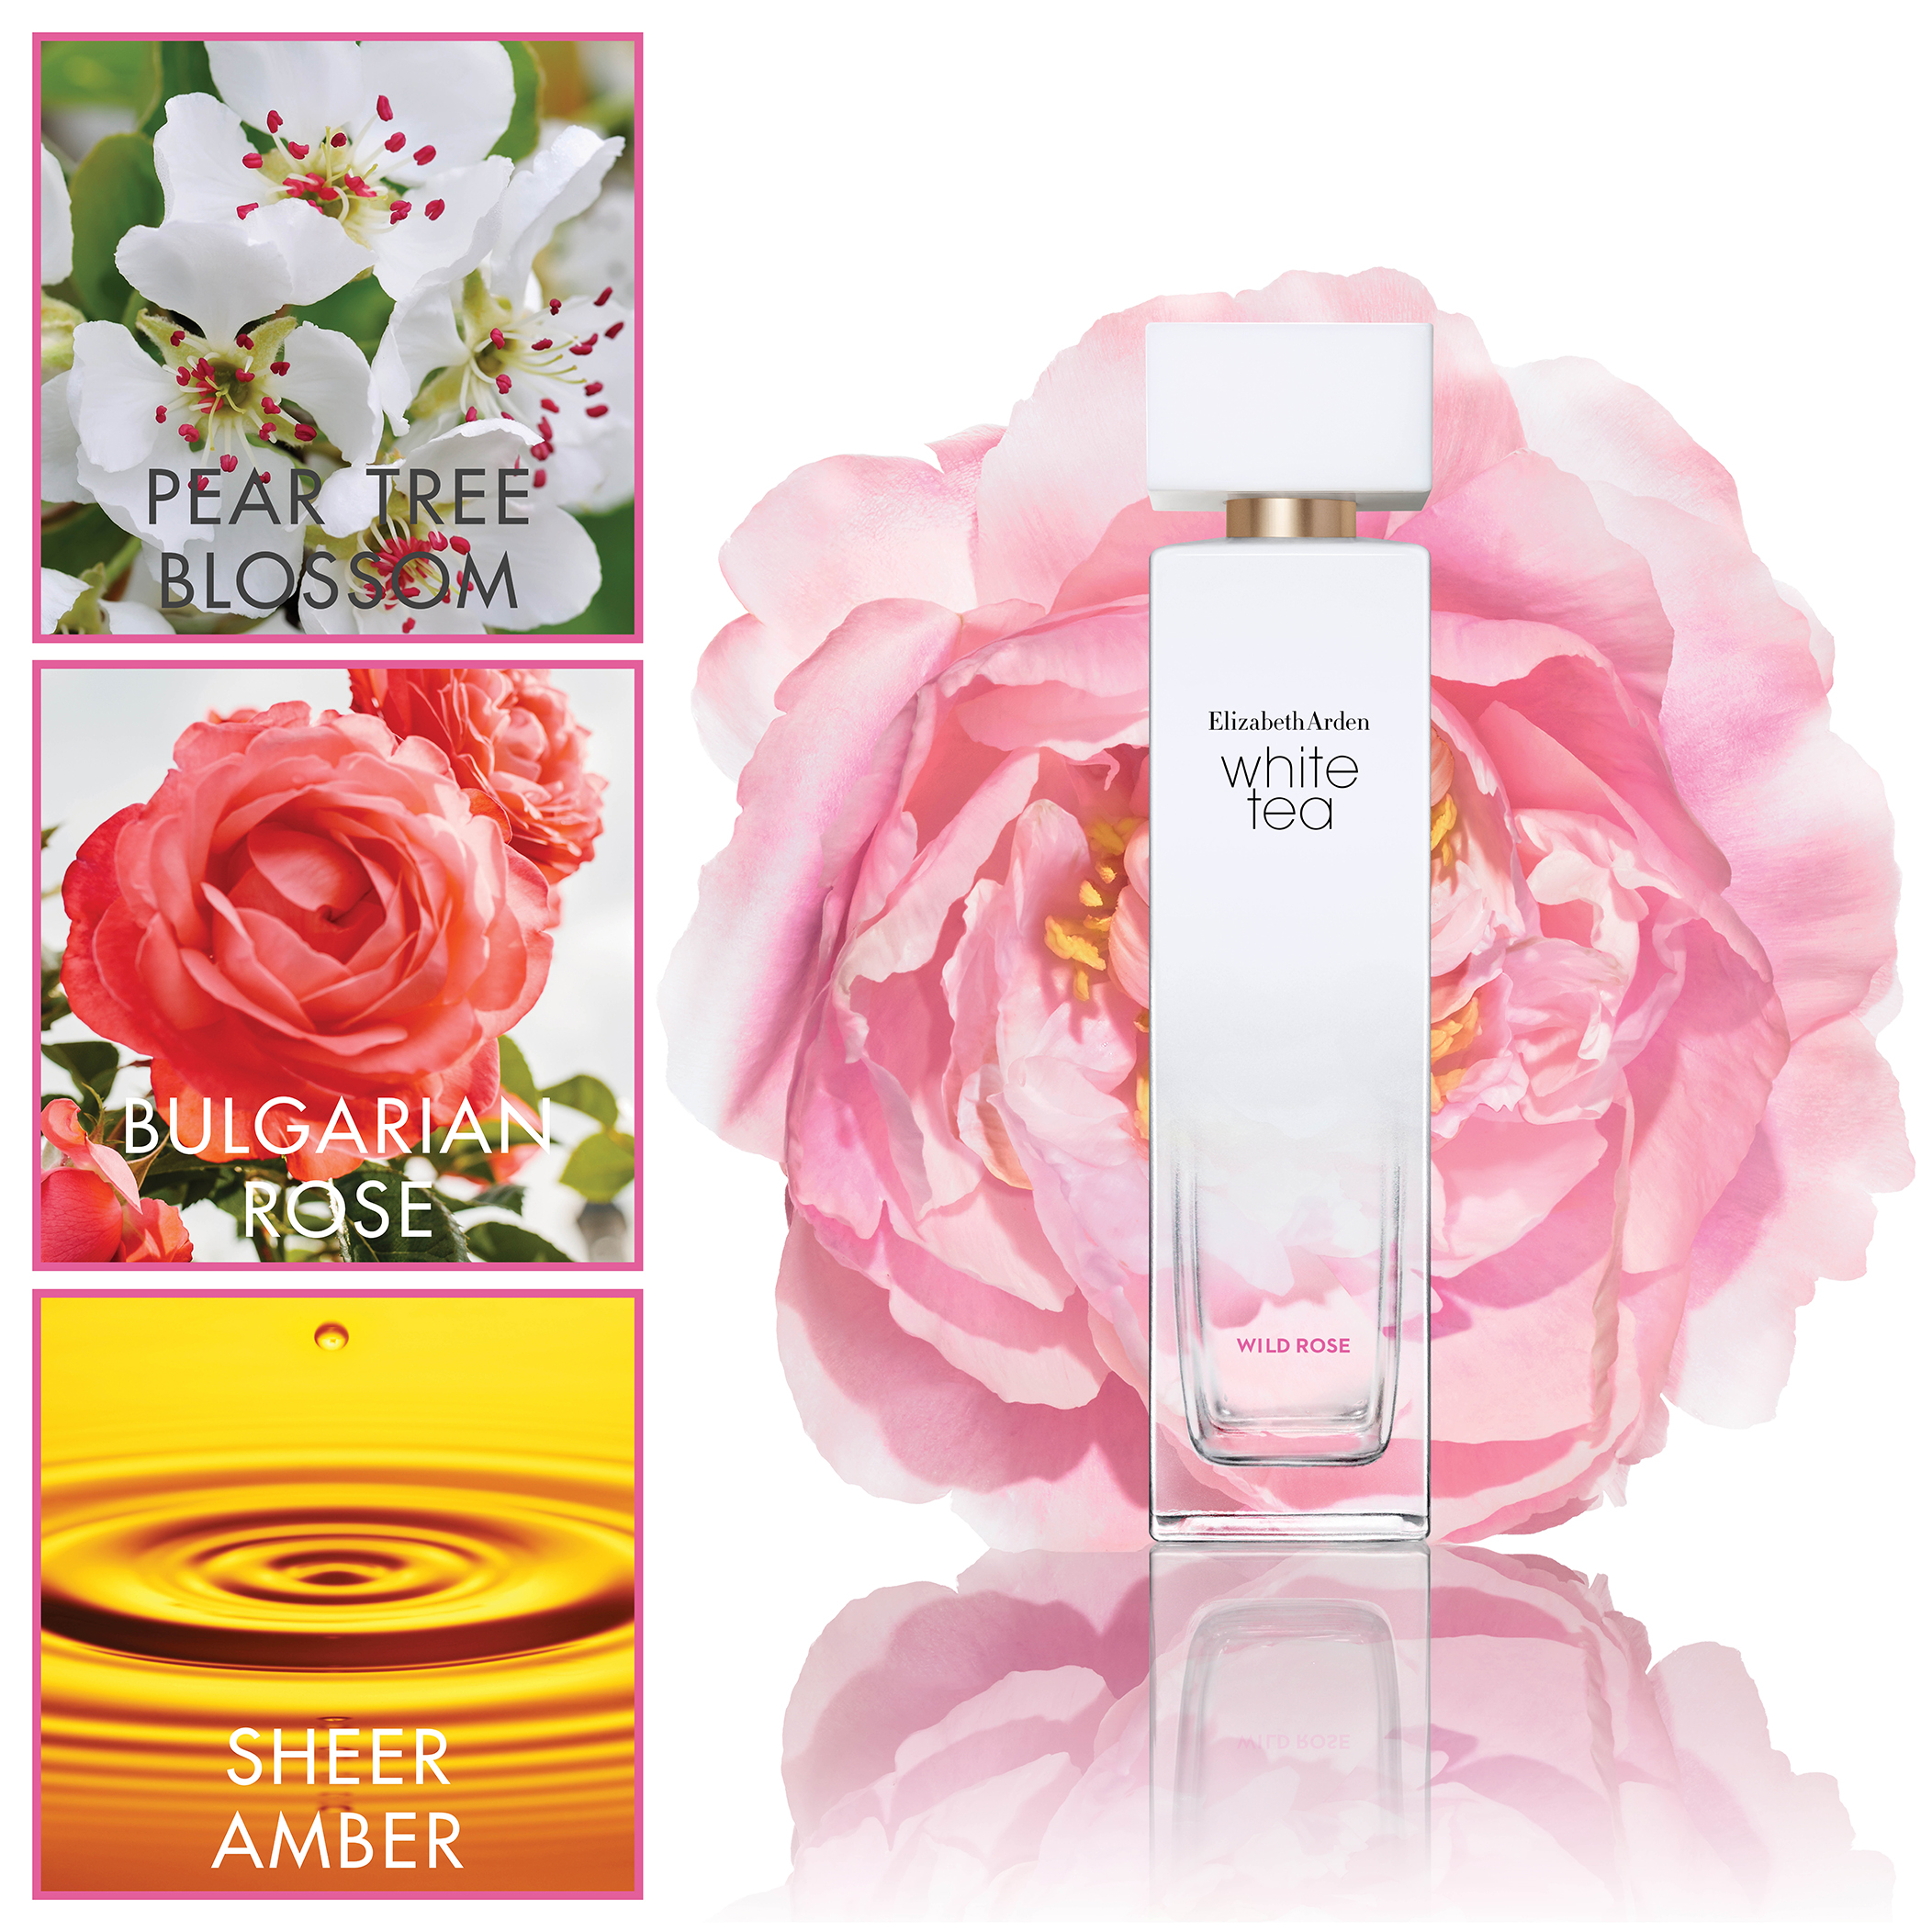 White Tea Wild Rose - Pear Tree Blossom, Bulgarian Rose, Sheer Amber